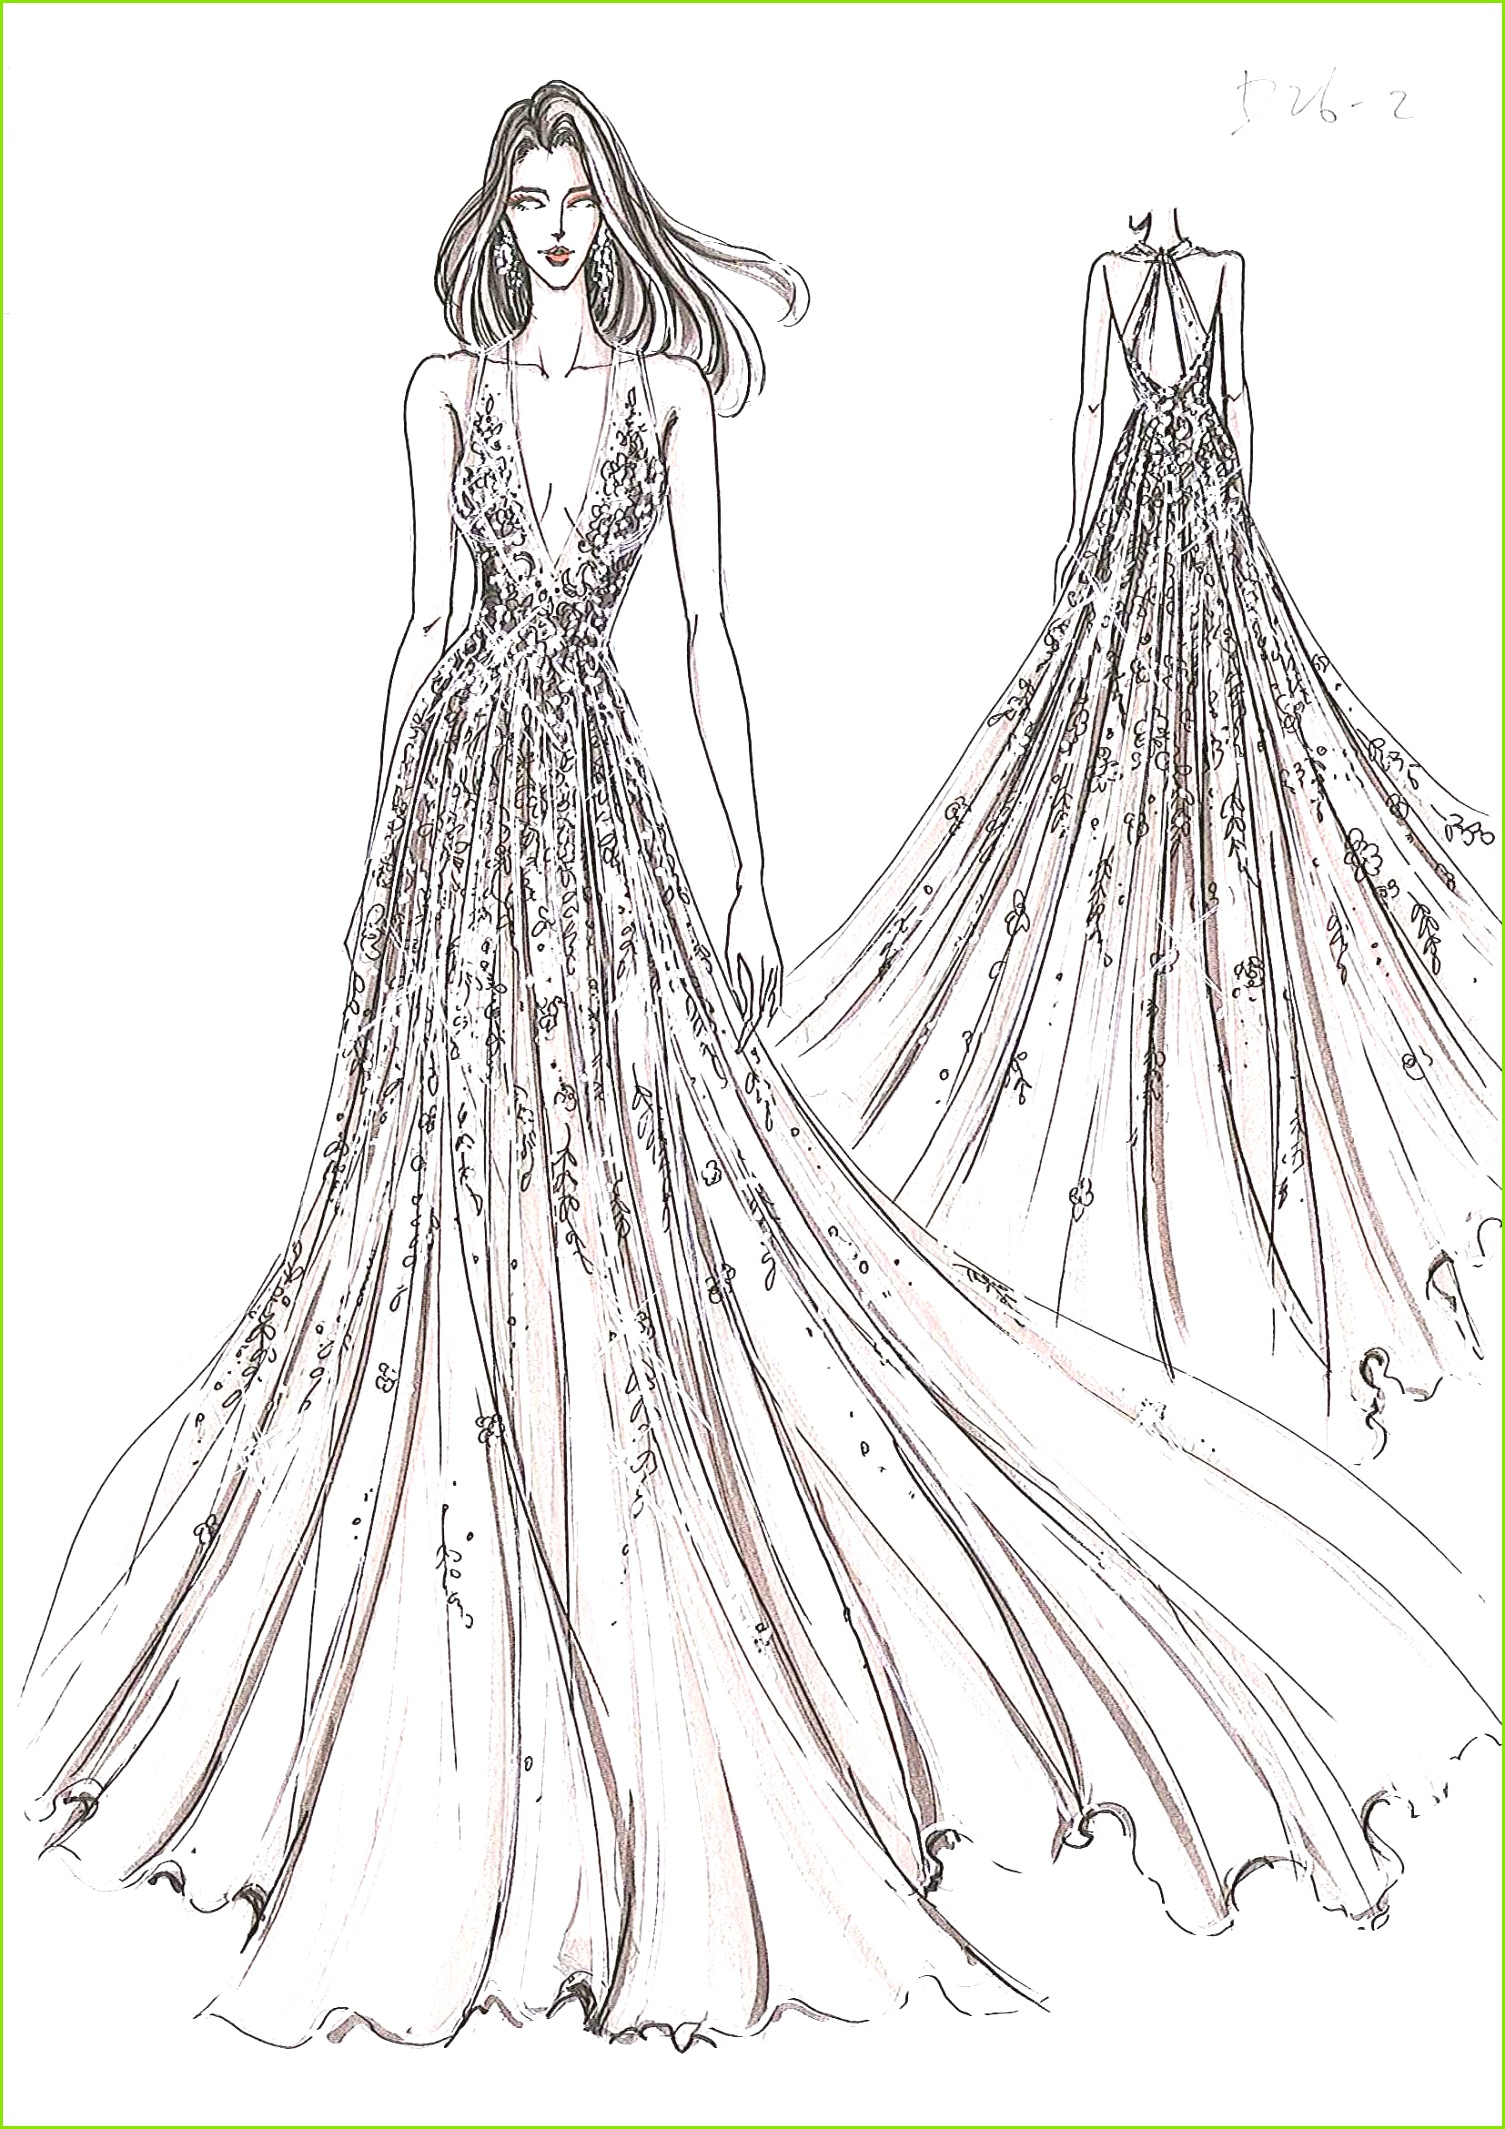 Illustration De Mode Dessin De Mode Esquisse Haute Couture Croquis De Robe